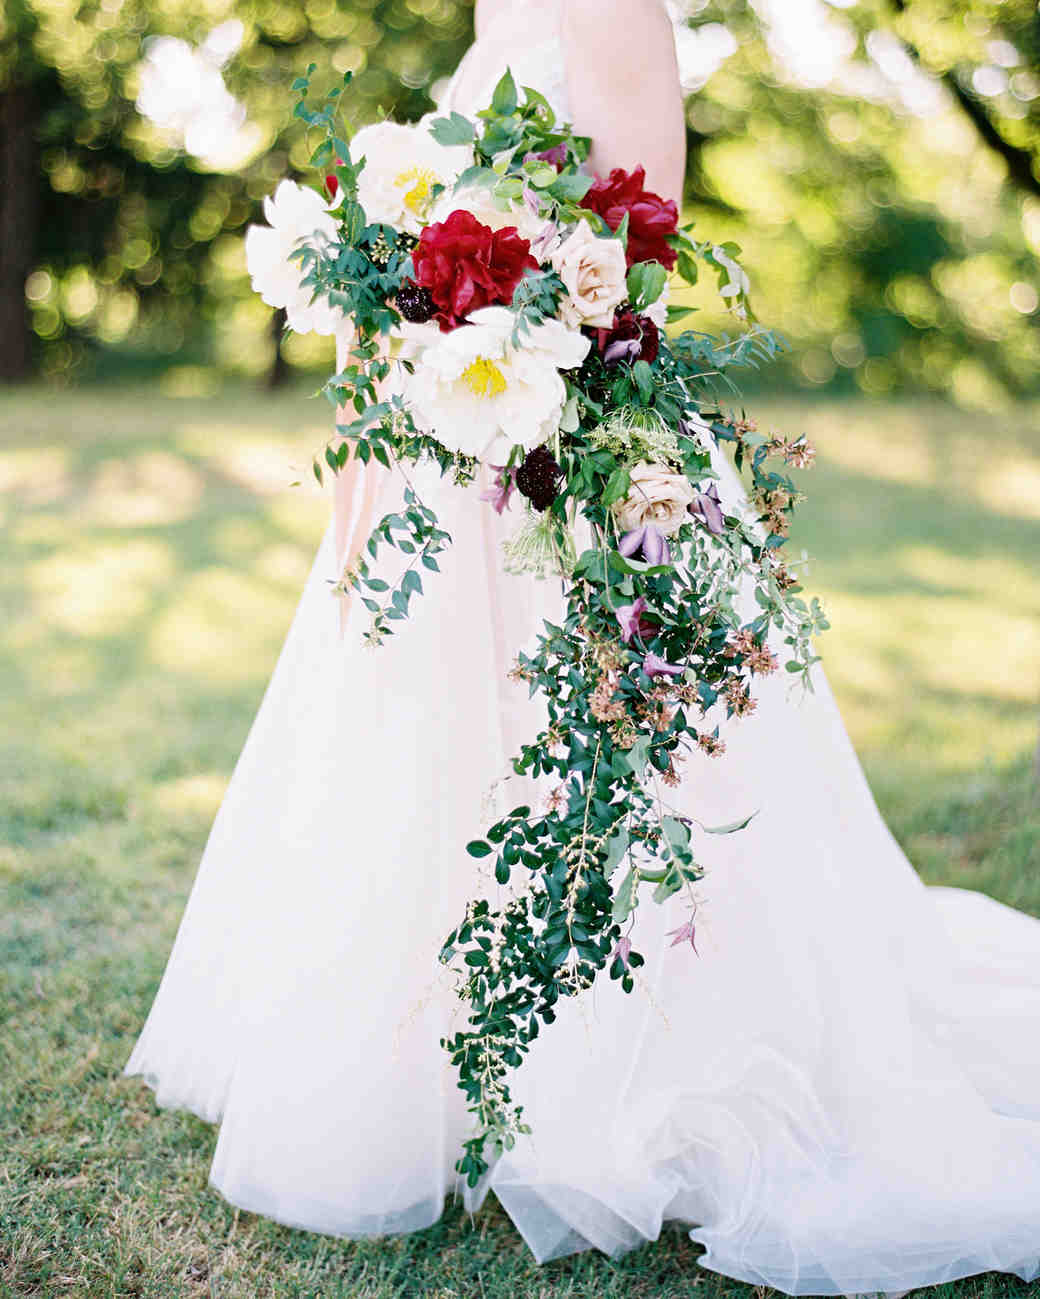 Flowers Wedding Ideas: 40 Chic Cascading Wedding Bouquets